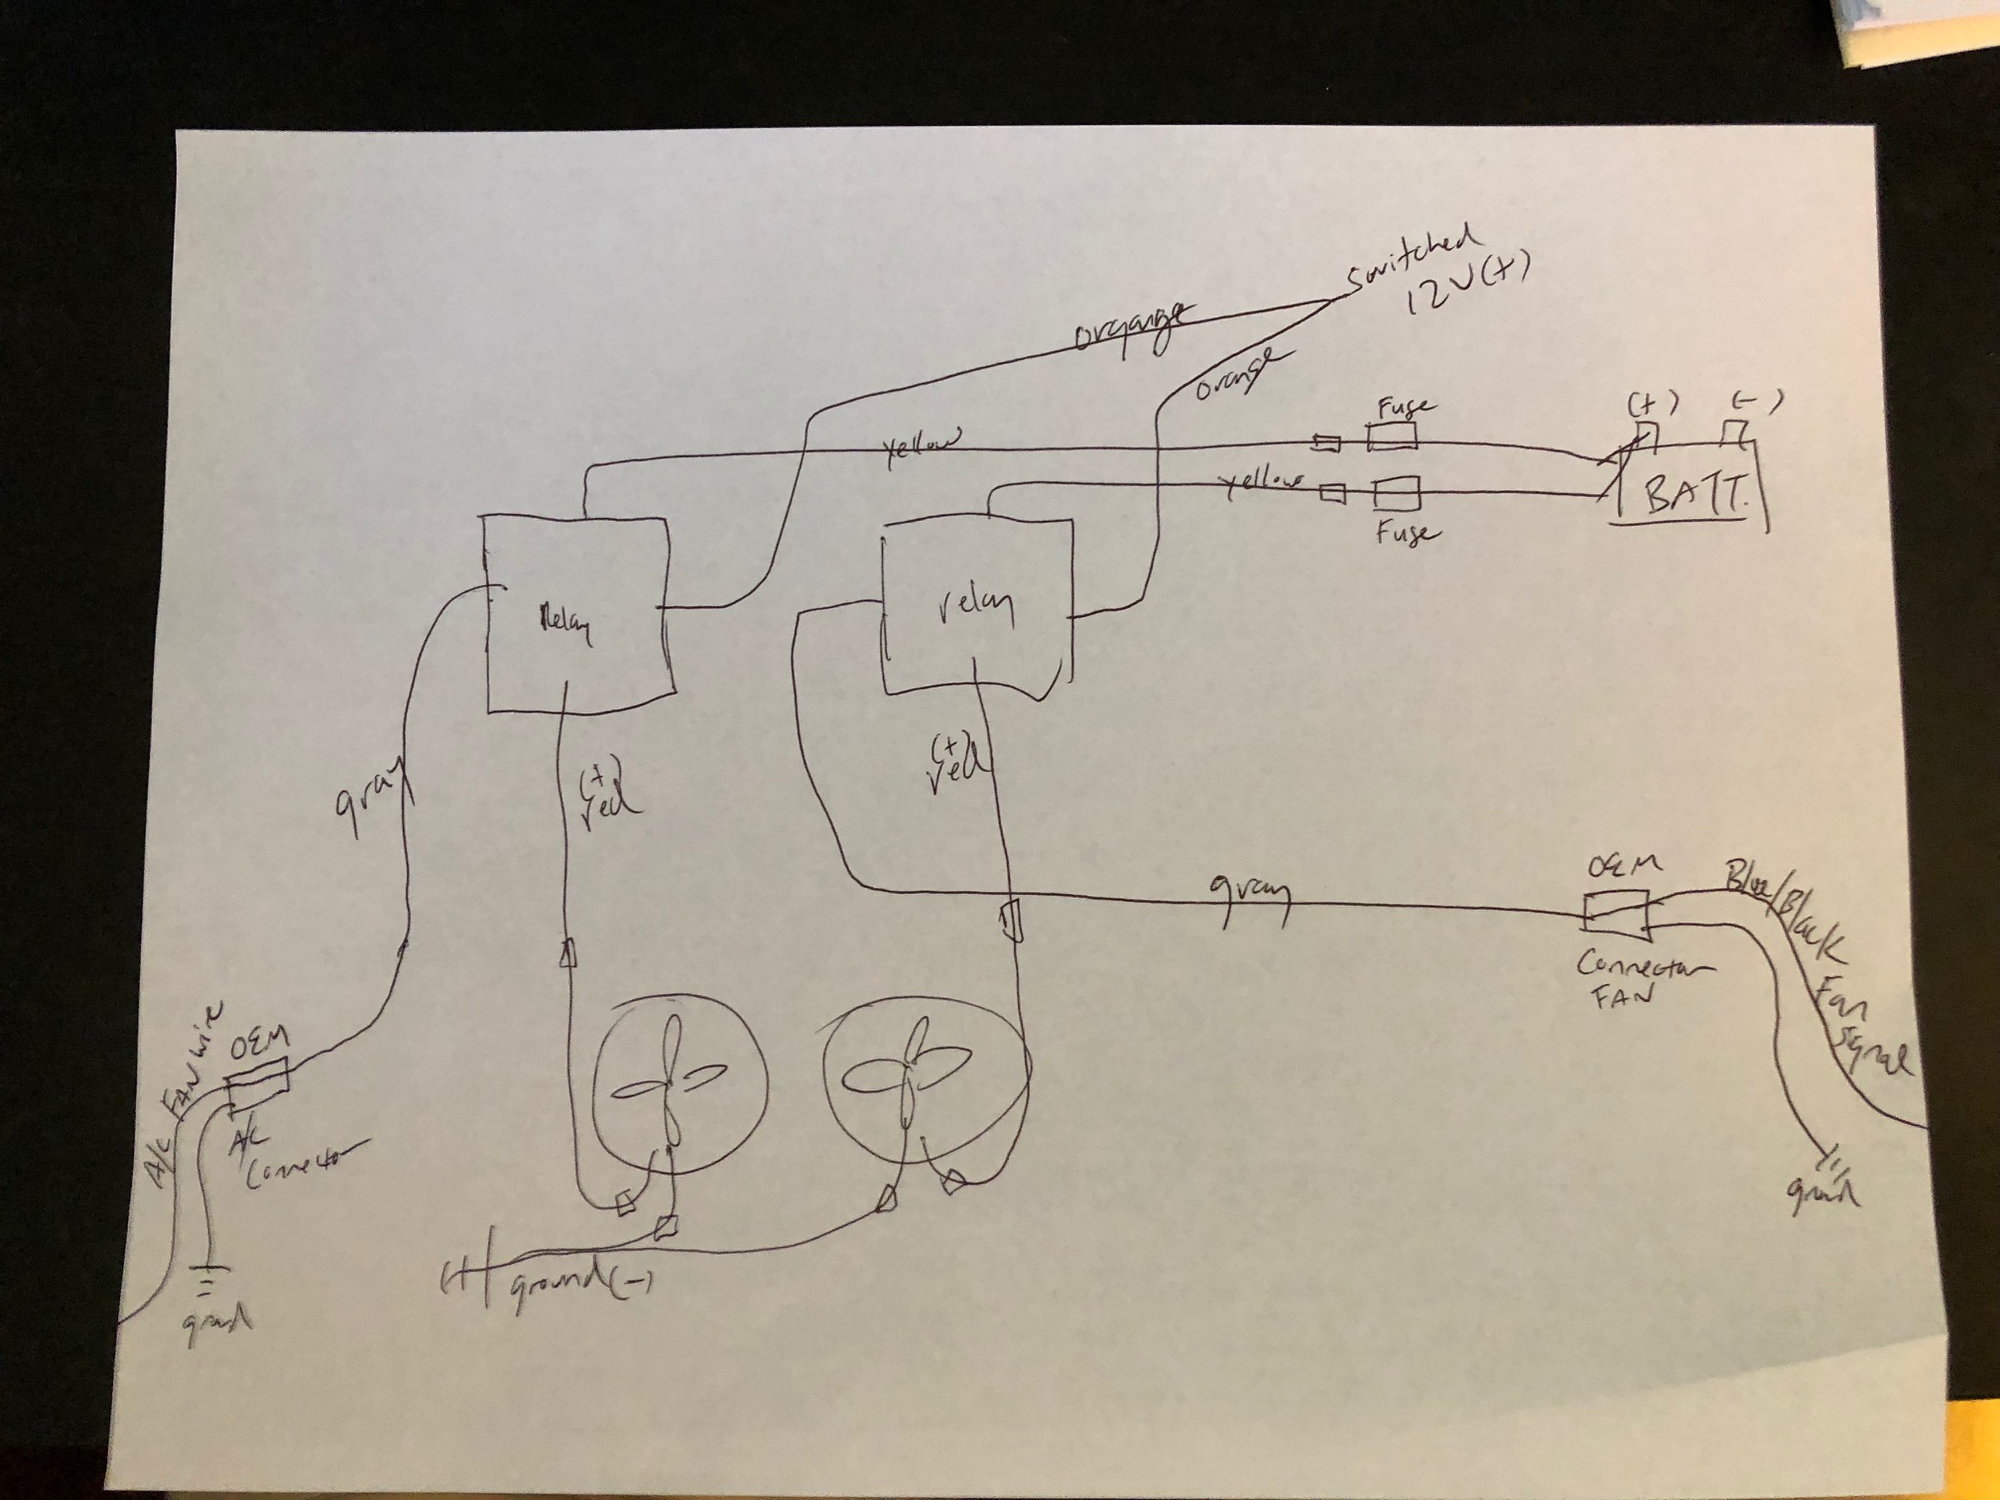 Correct Wiring For Dual Spal Fans With 2 Relays